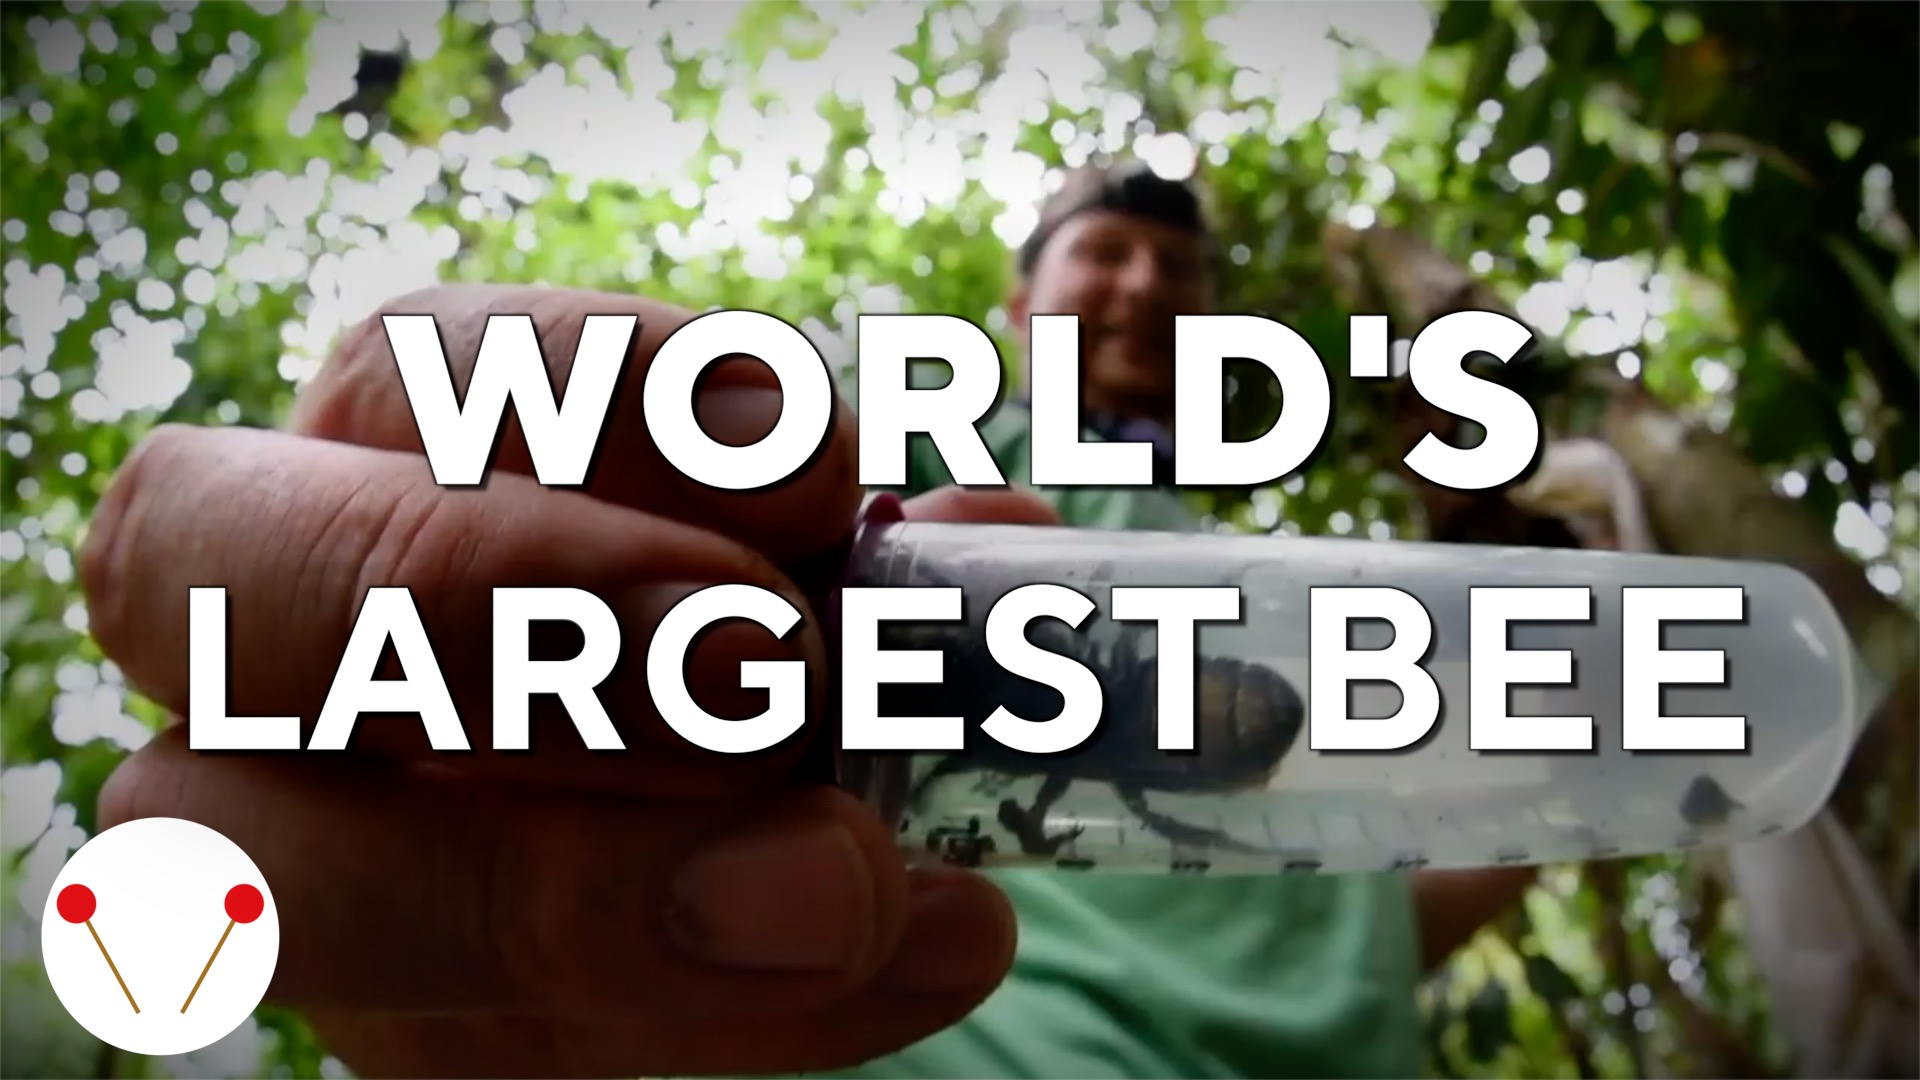 Meet the world's largest bee #science